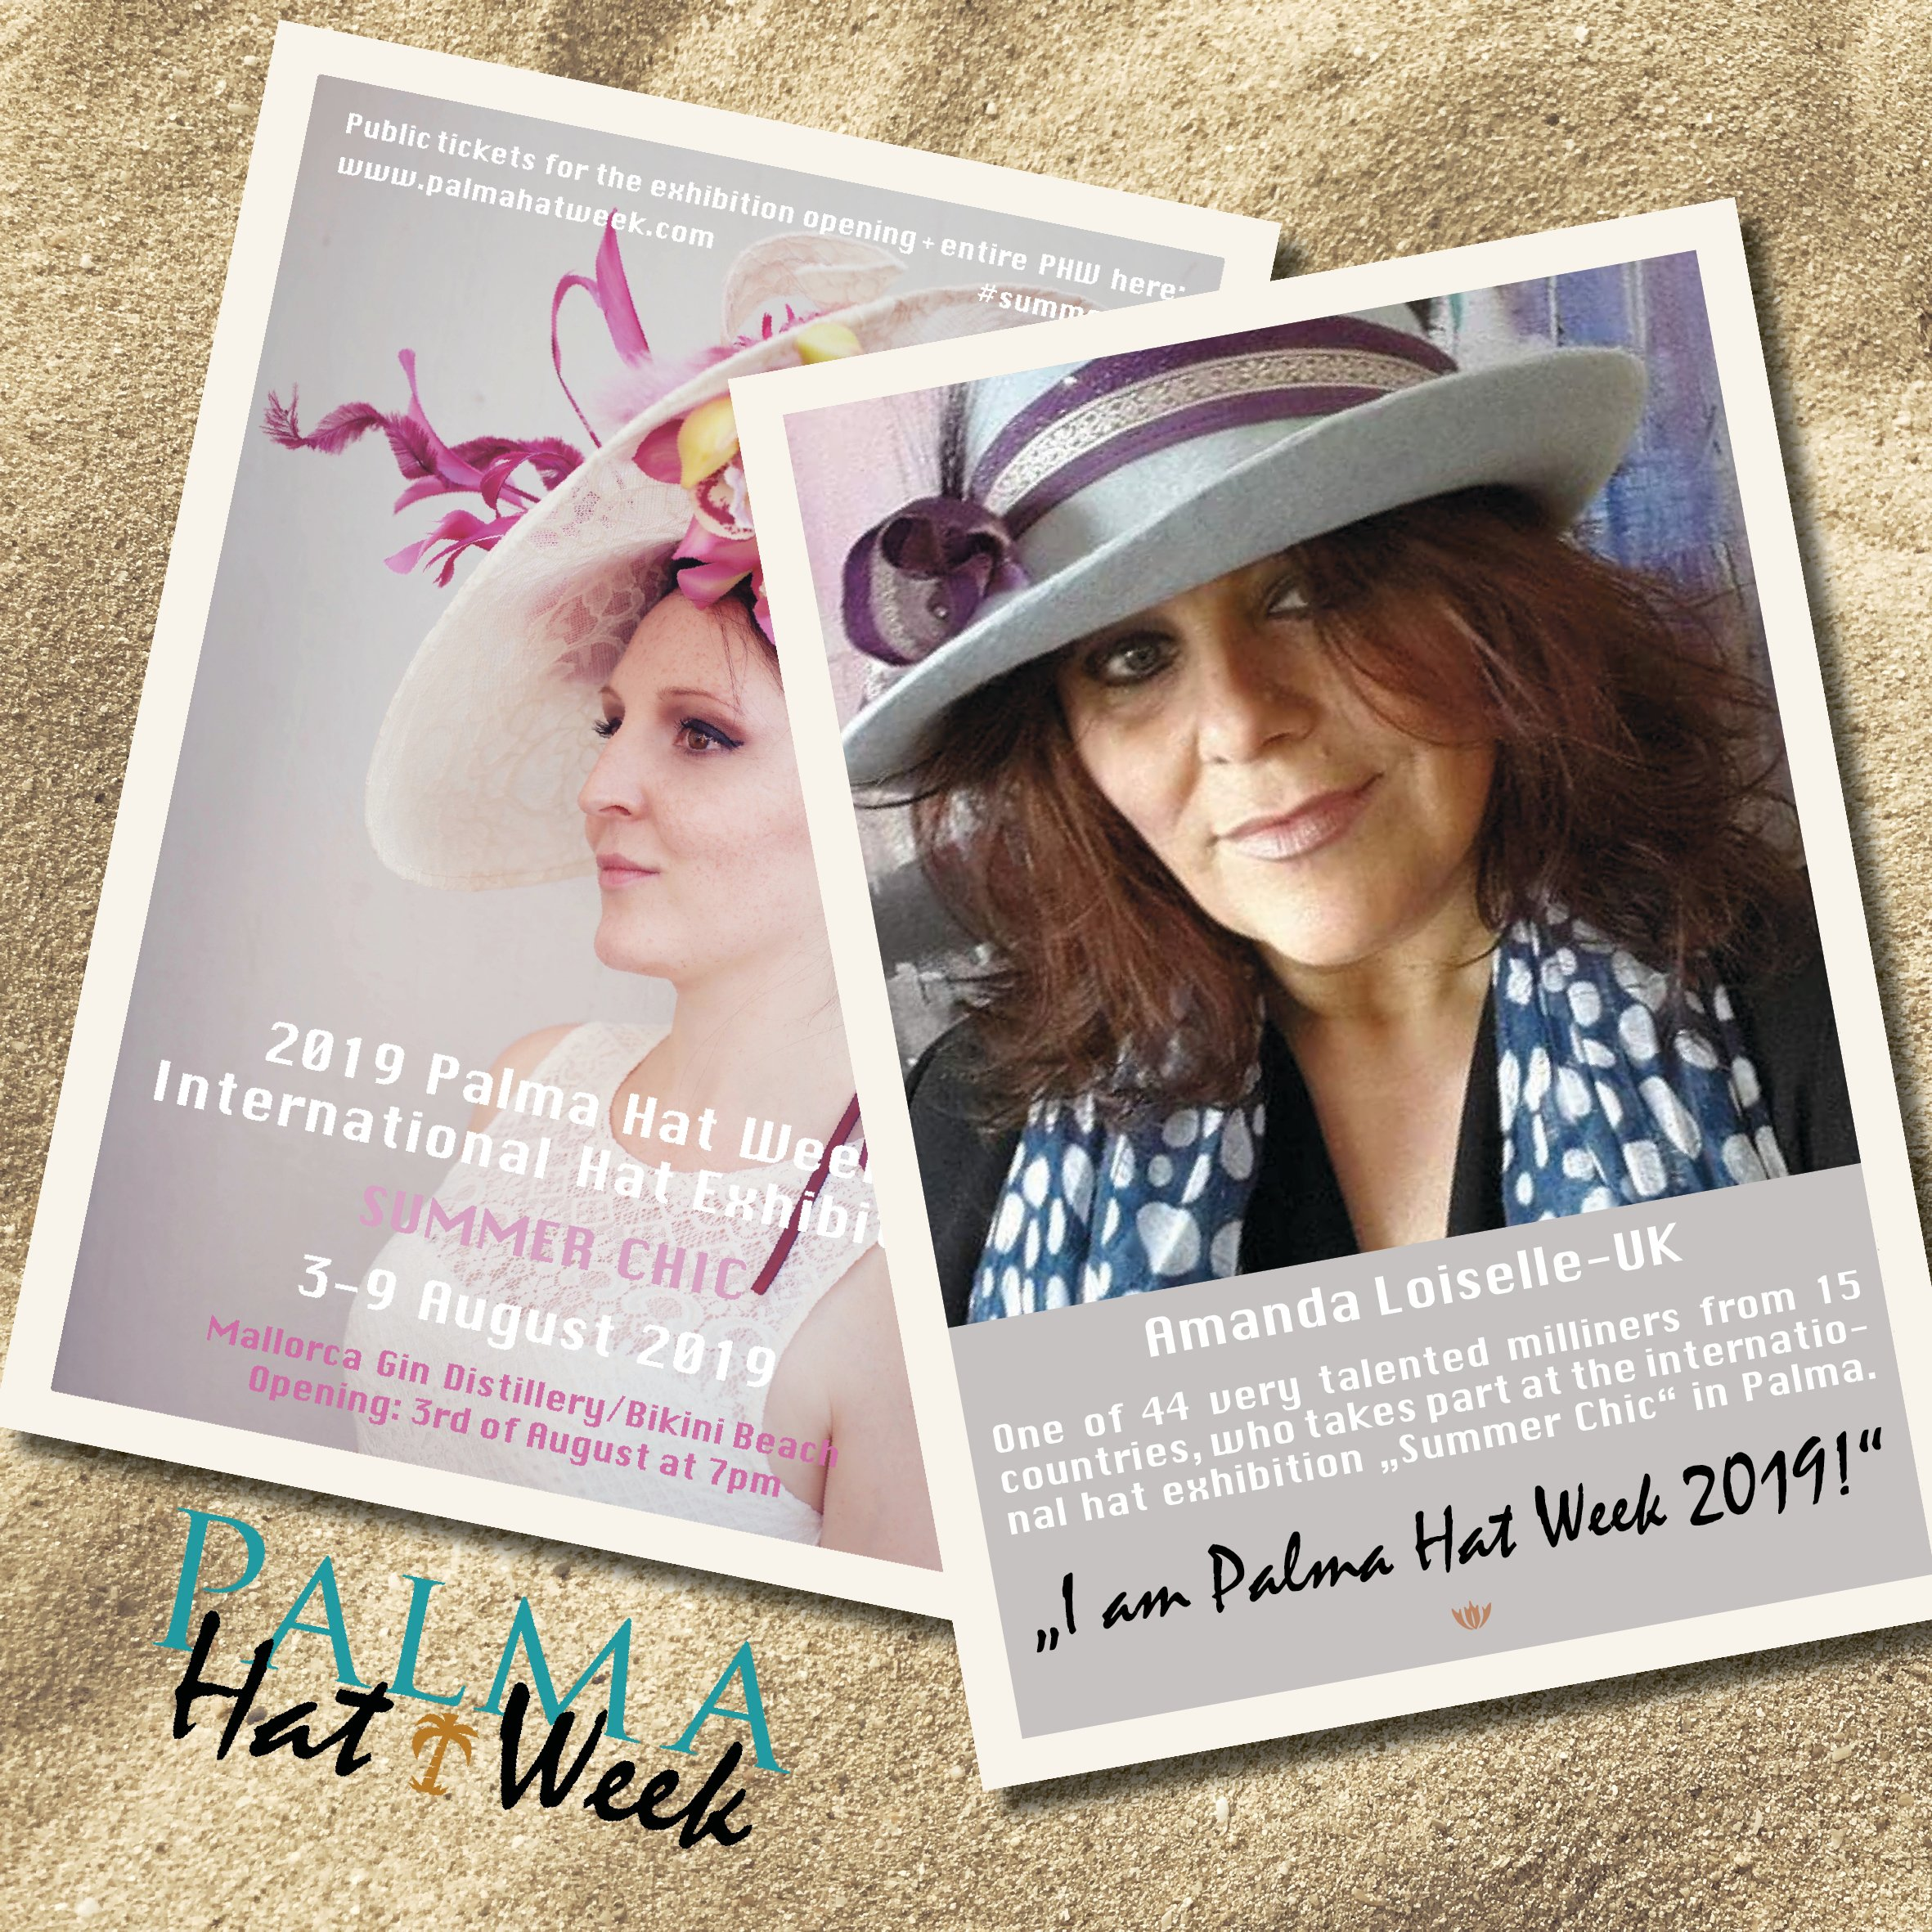 I am Palma Hatweek_Amanda Loiselle_ministry of Millinery